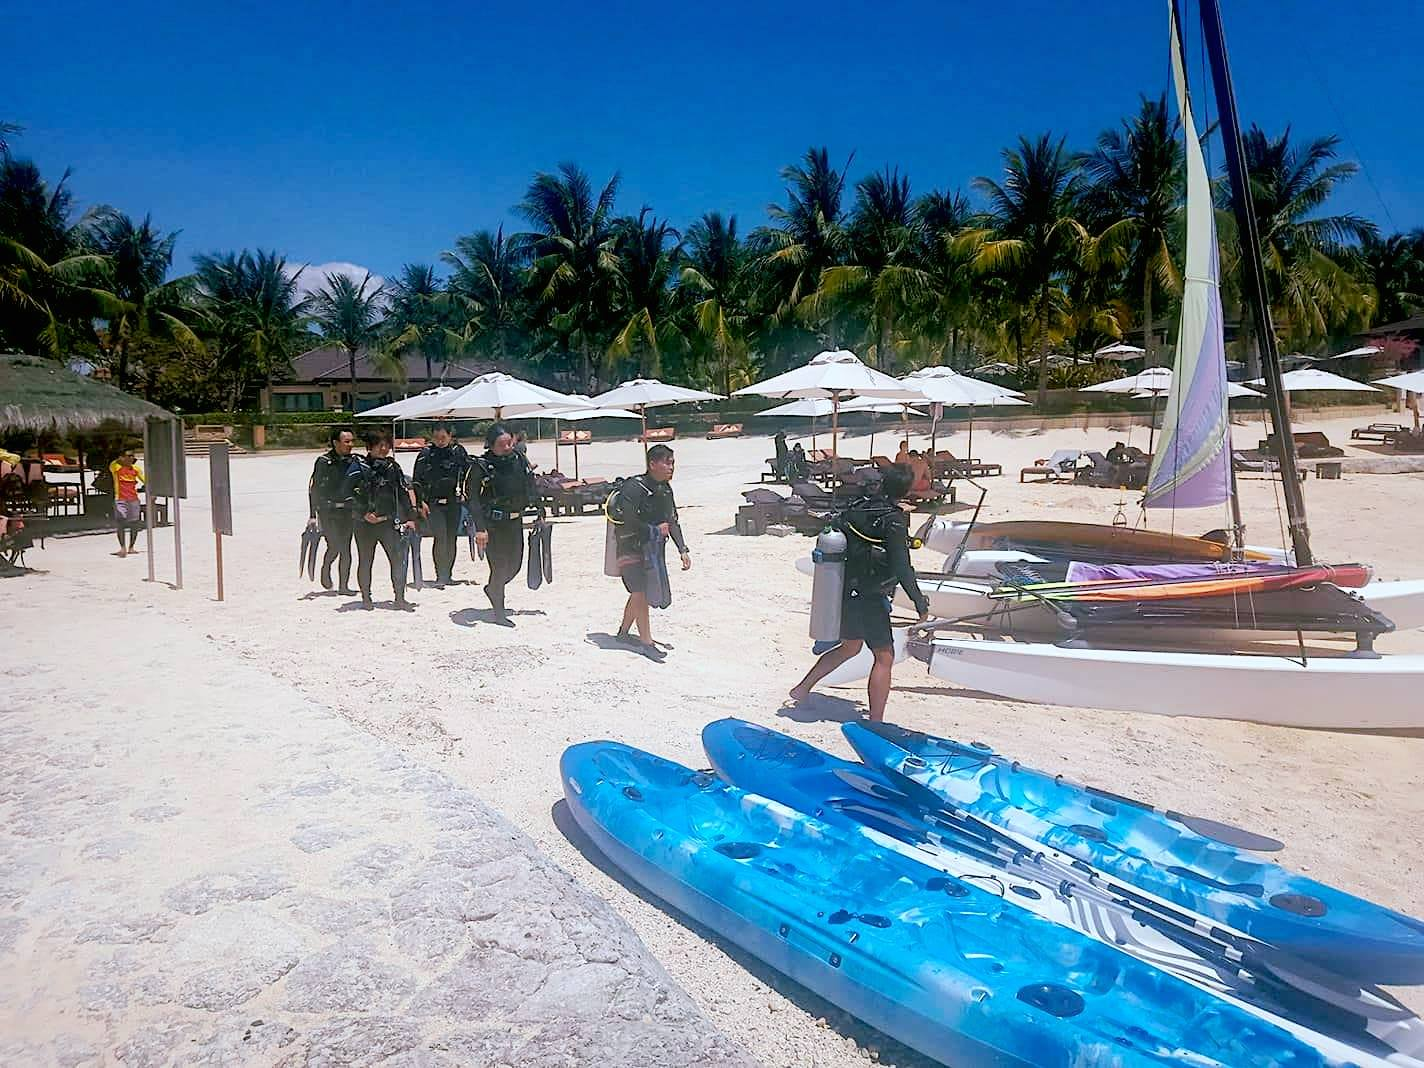 Group of tourists going on a diving session in Mactan Cebu